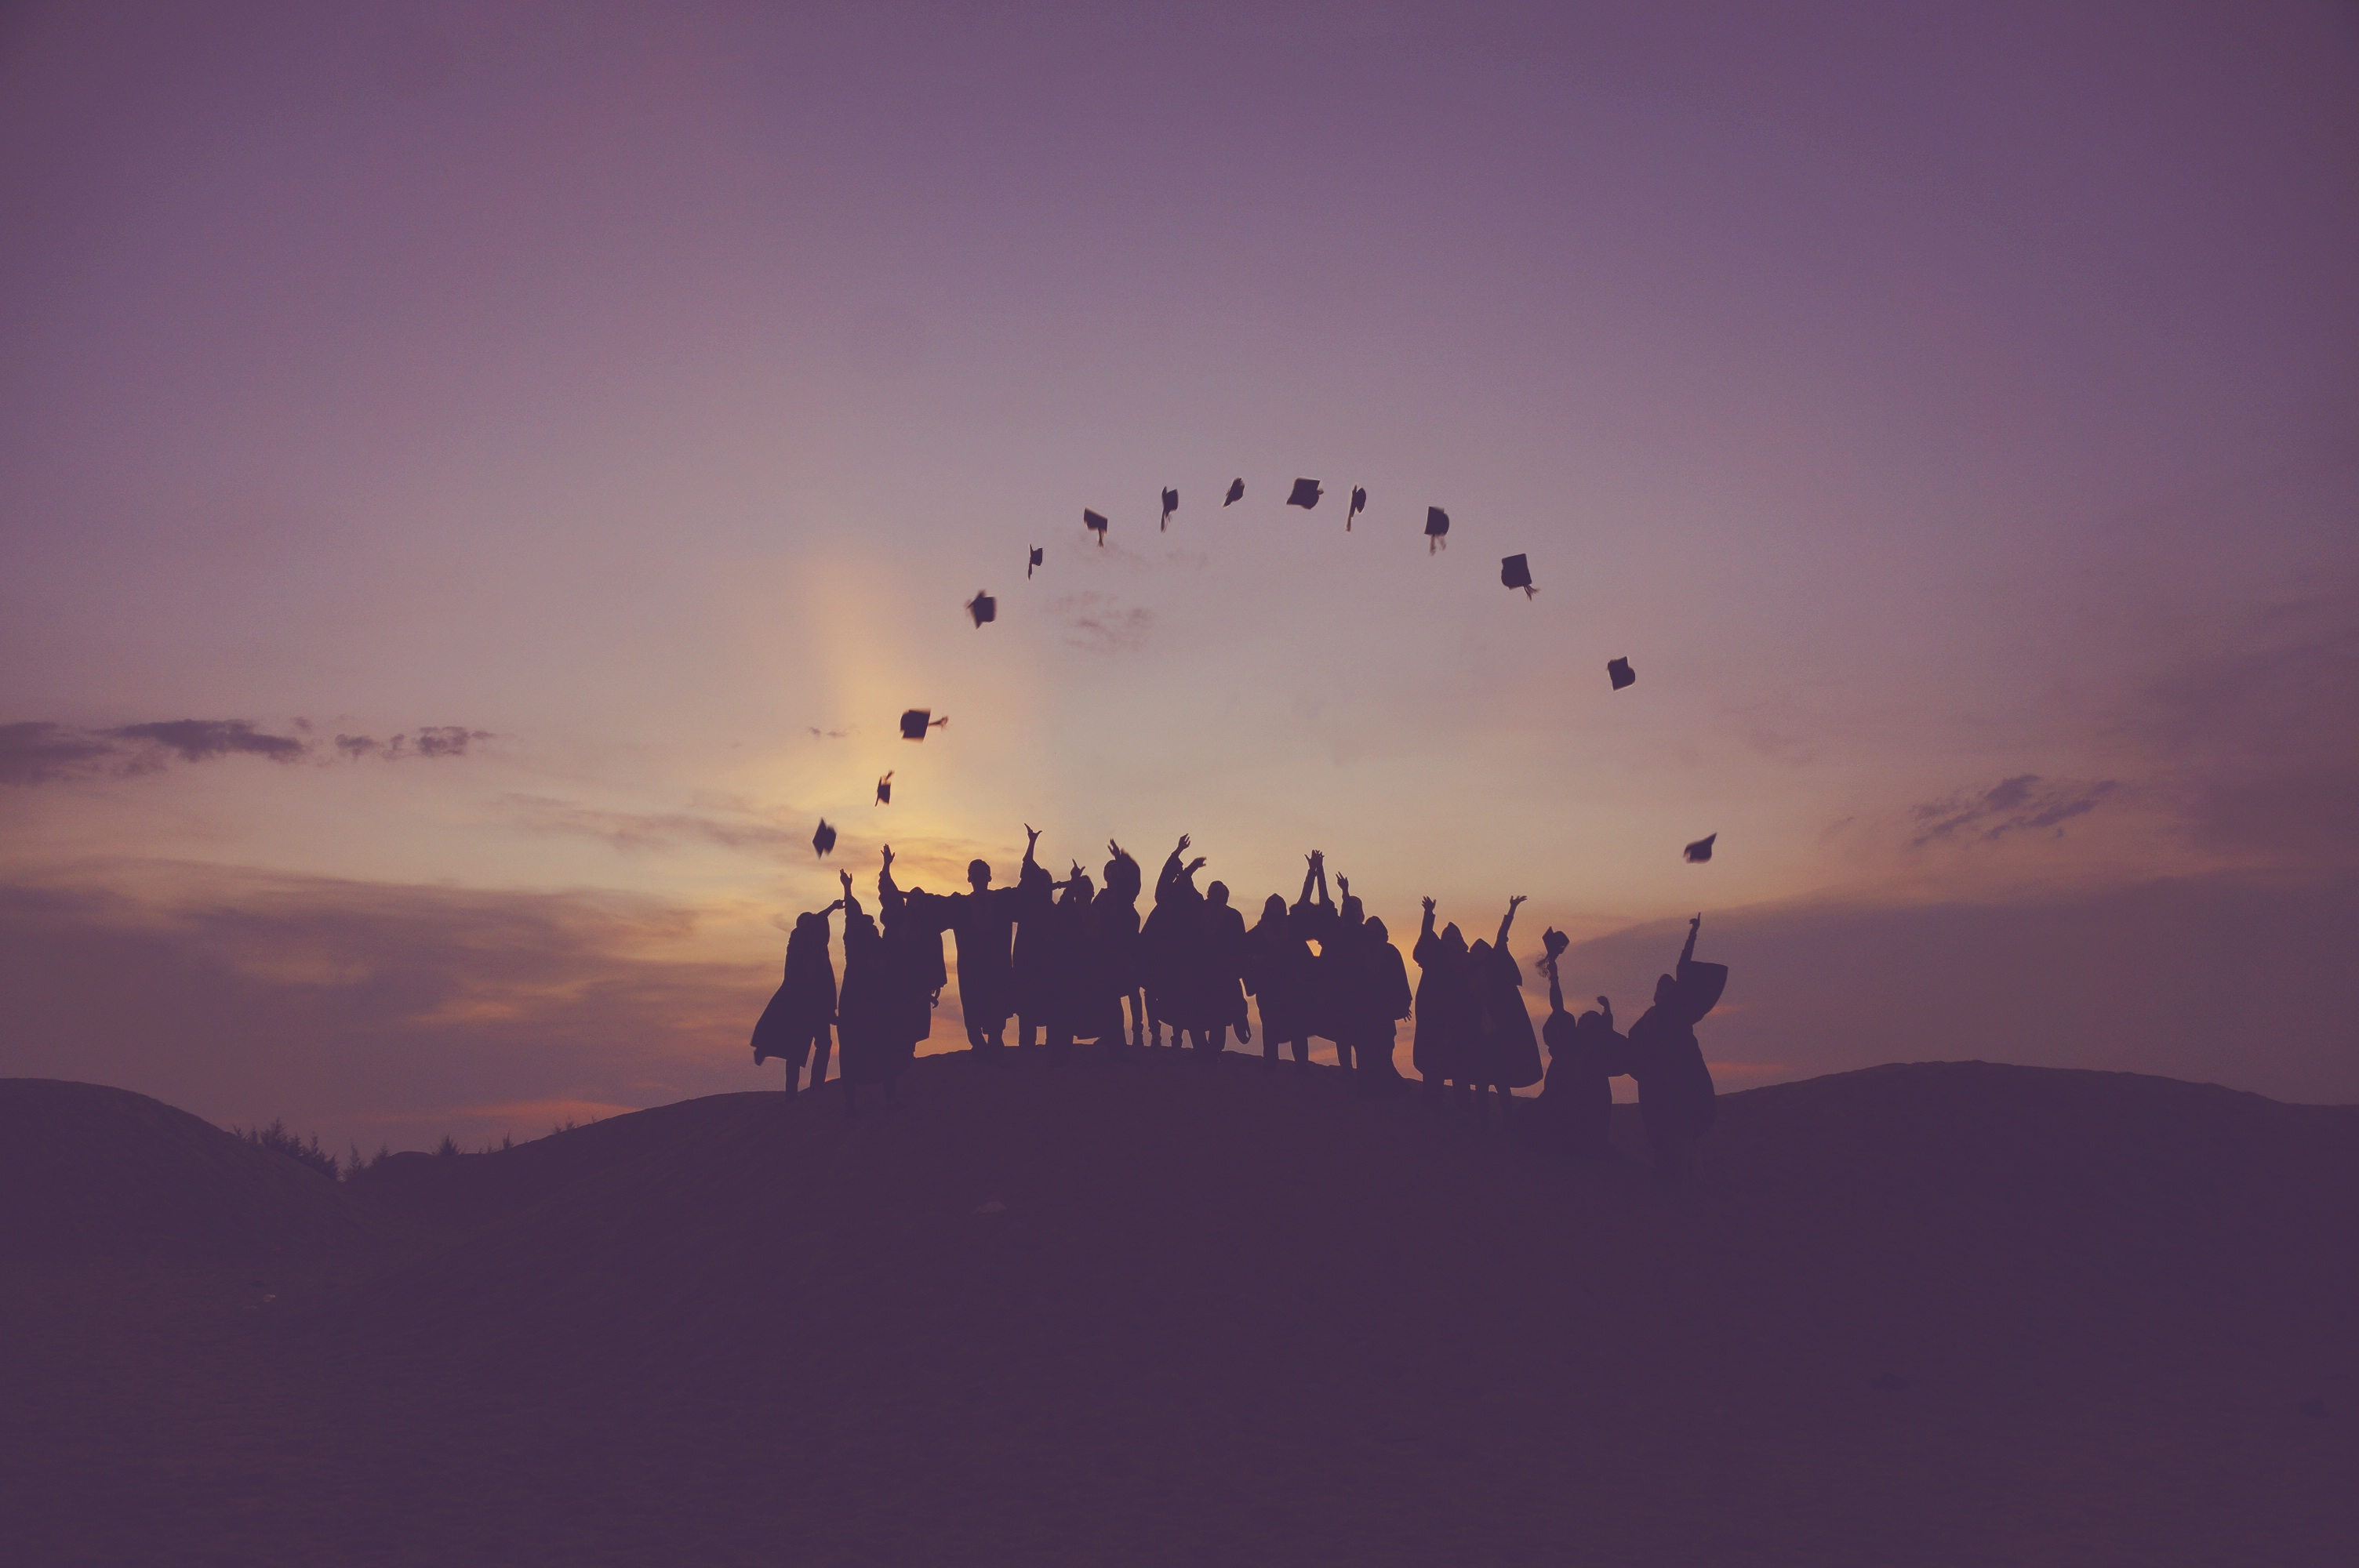 Graduation season and how to get inspired to find meaningful